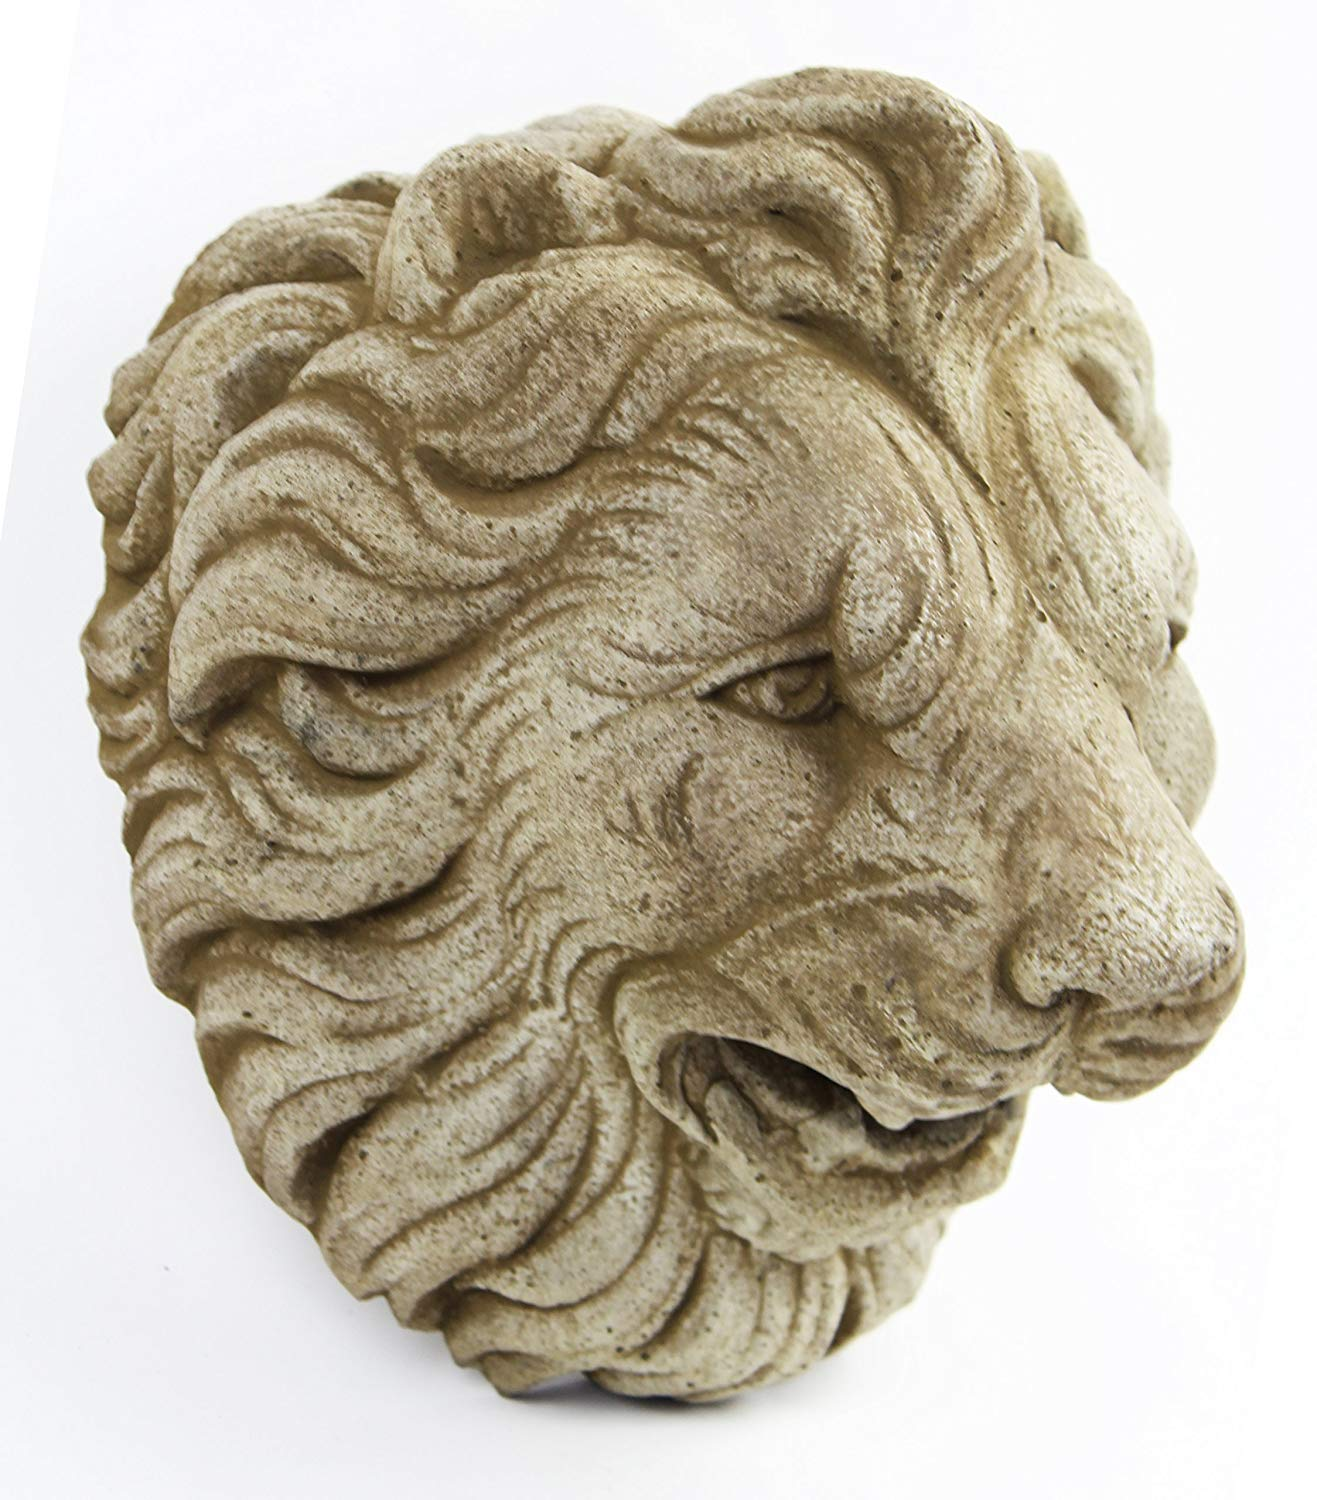 Cheap Head Wall Plaque, Find Head Wall Plaque Deals On